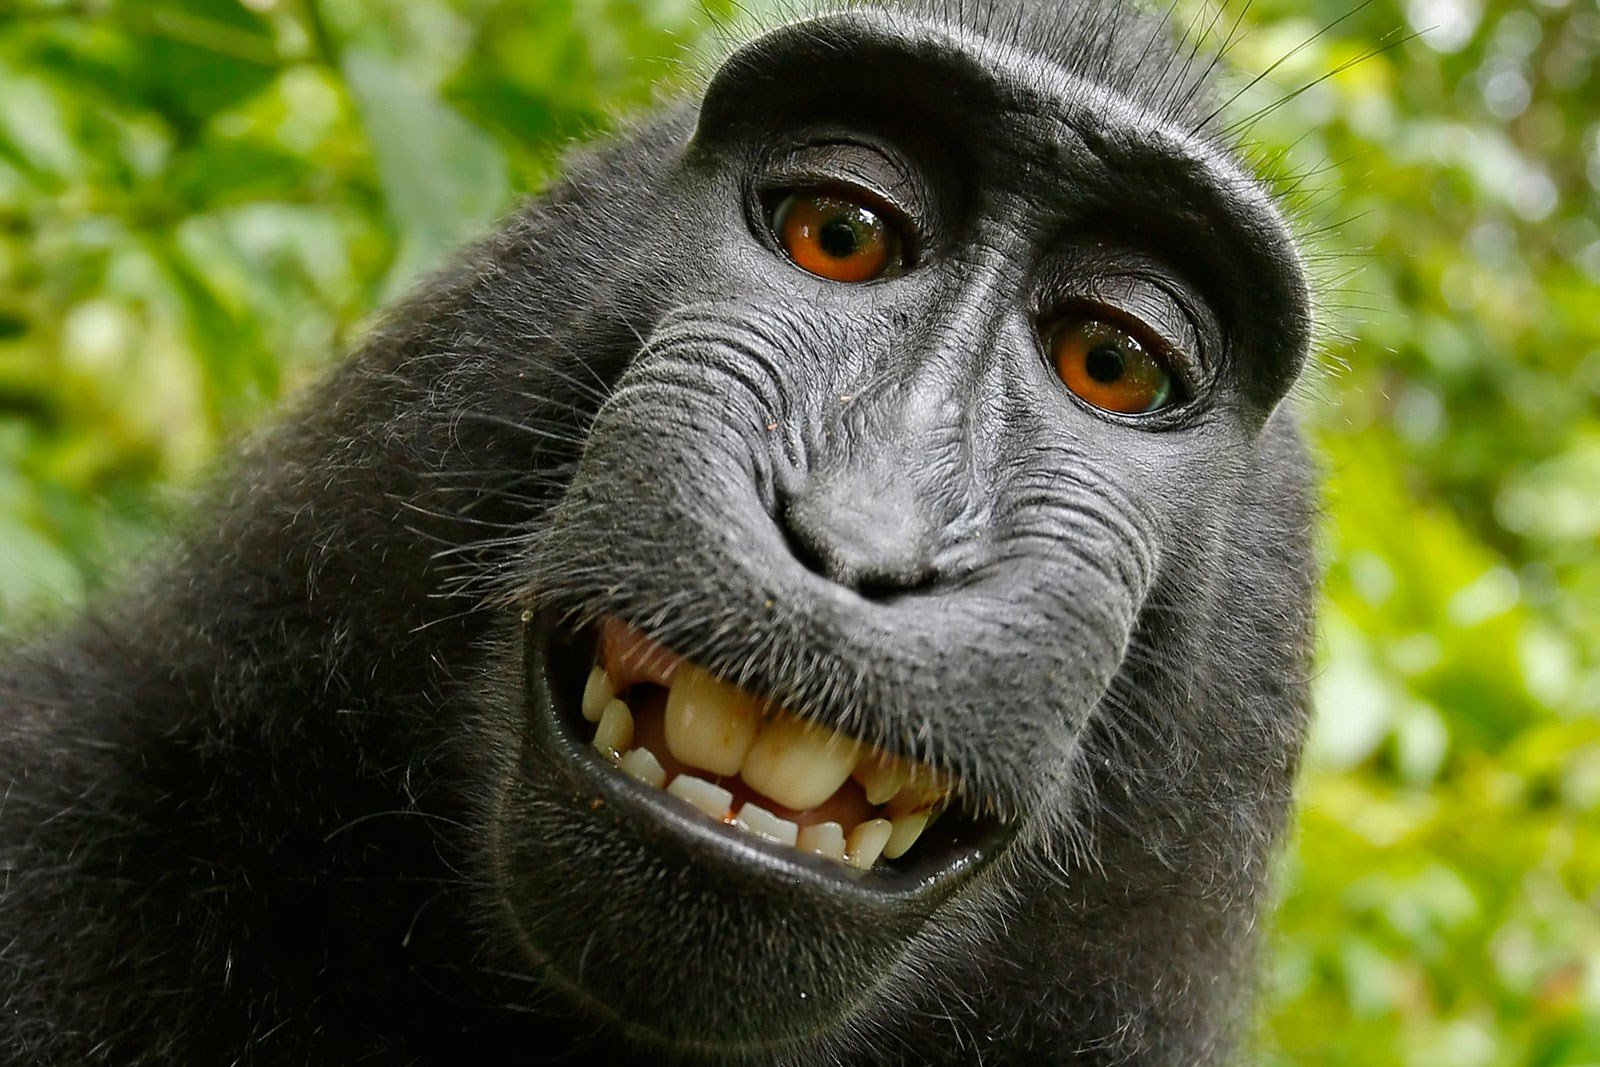 PETA, Photographer Reach Settlement in Monkey Selfie Lawsuit